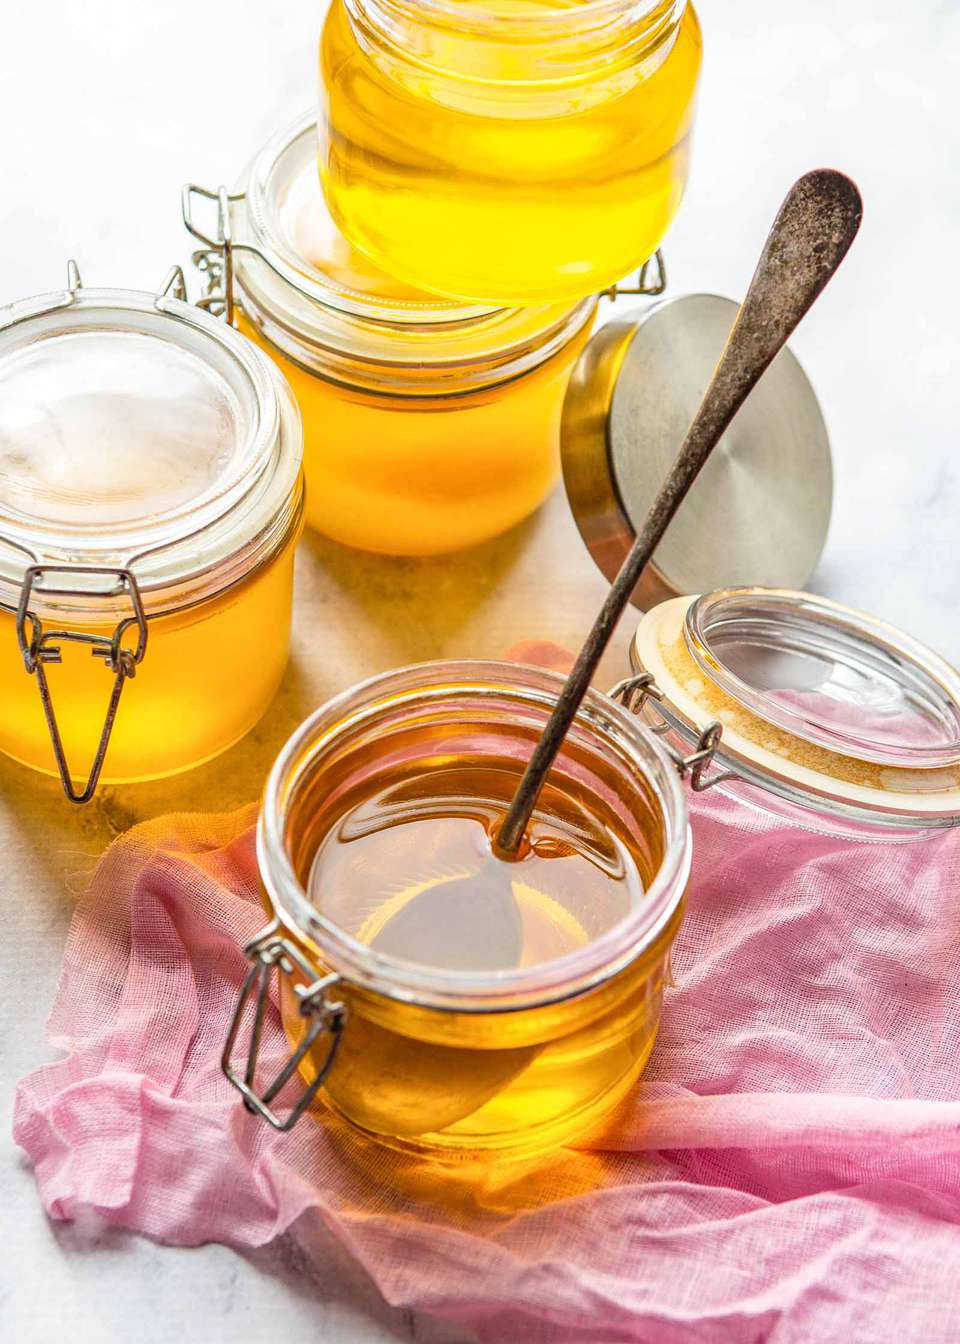 Ghee butter - multiple jars of ghee on a pink cloth